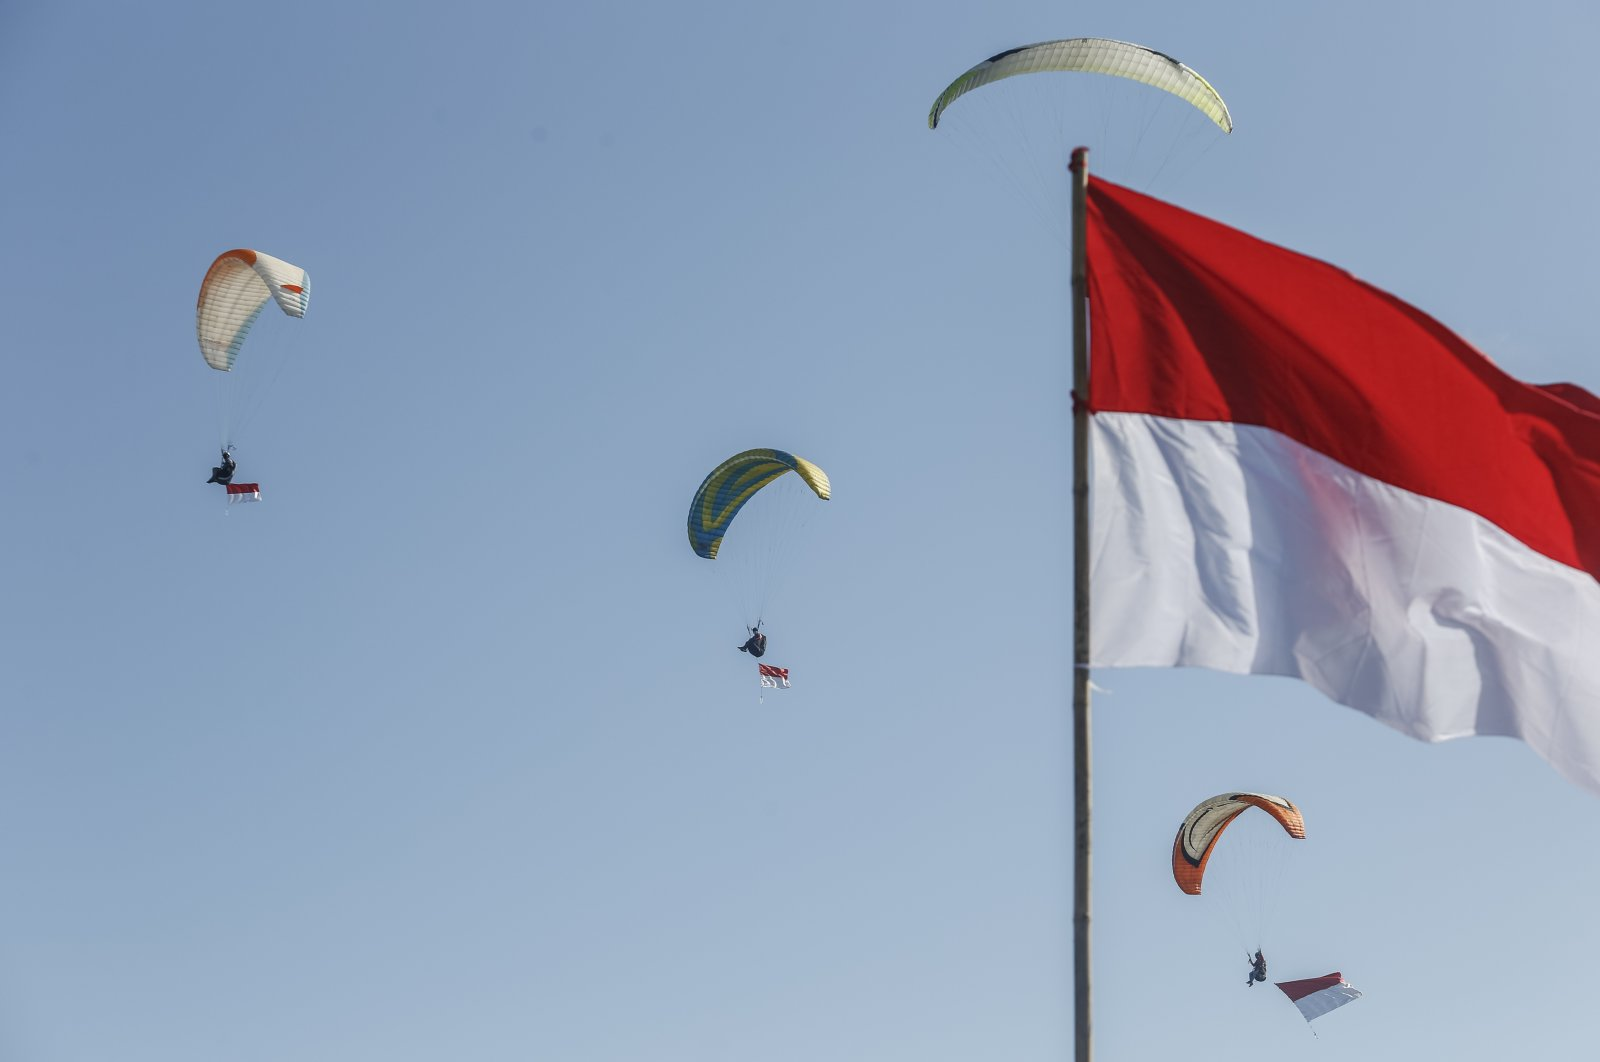 The 76th anniversary of Indonesia's Independence was celebrated in Bali, Indonesia, Aug. 17, 2021. (AA Photo)